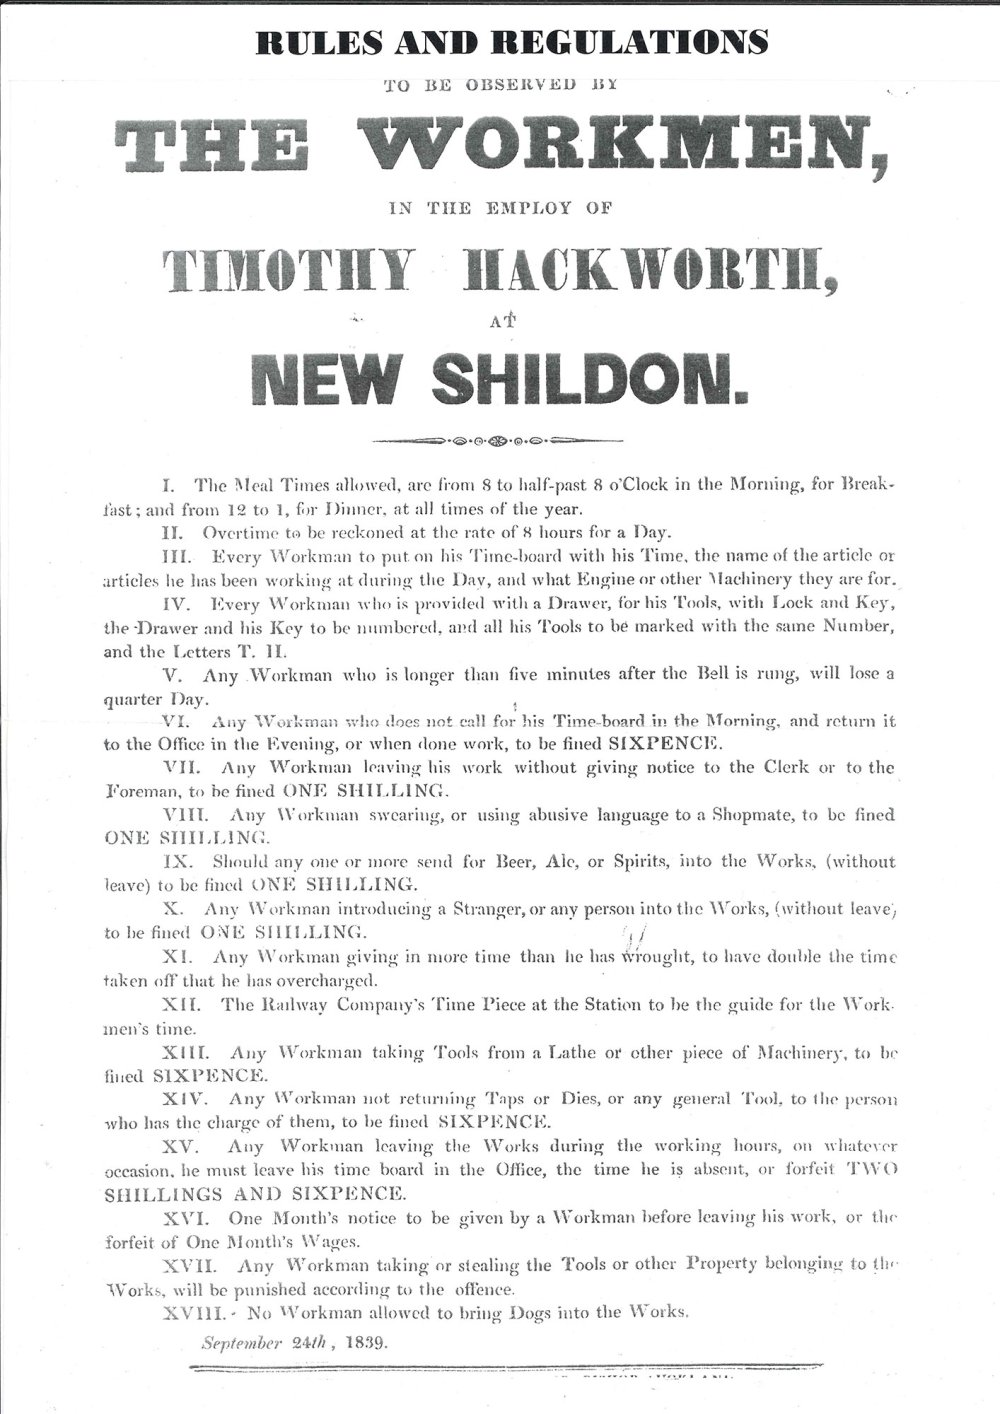 Rules and Regulations to be Observed by the Workmen in the Employ of Timothy Hackworth at New Shildon' (24 September 1839)